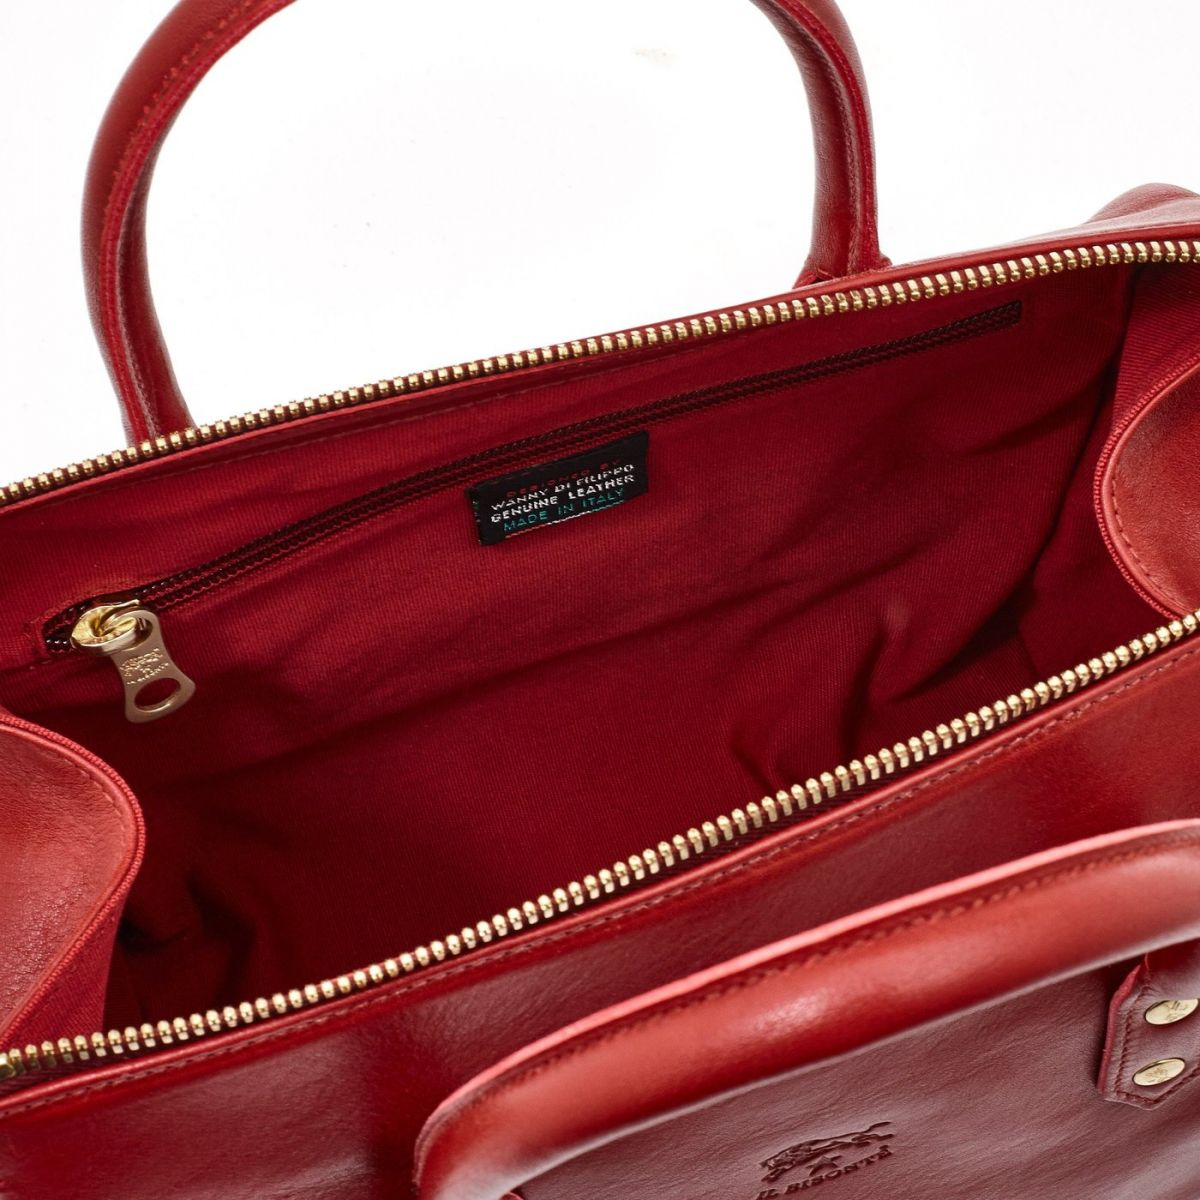 Women's Handbag Pratolino in Cowhide Double Leather BTH050 color Red | Details